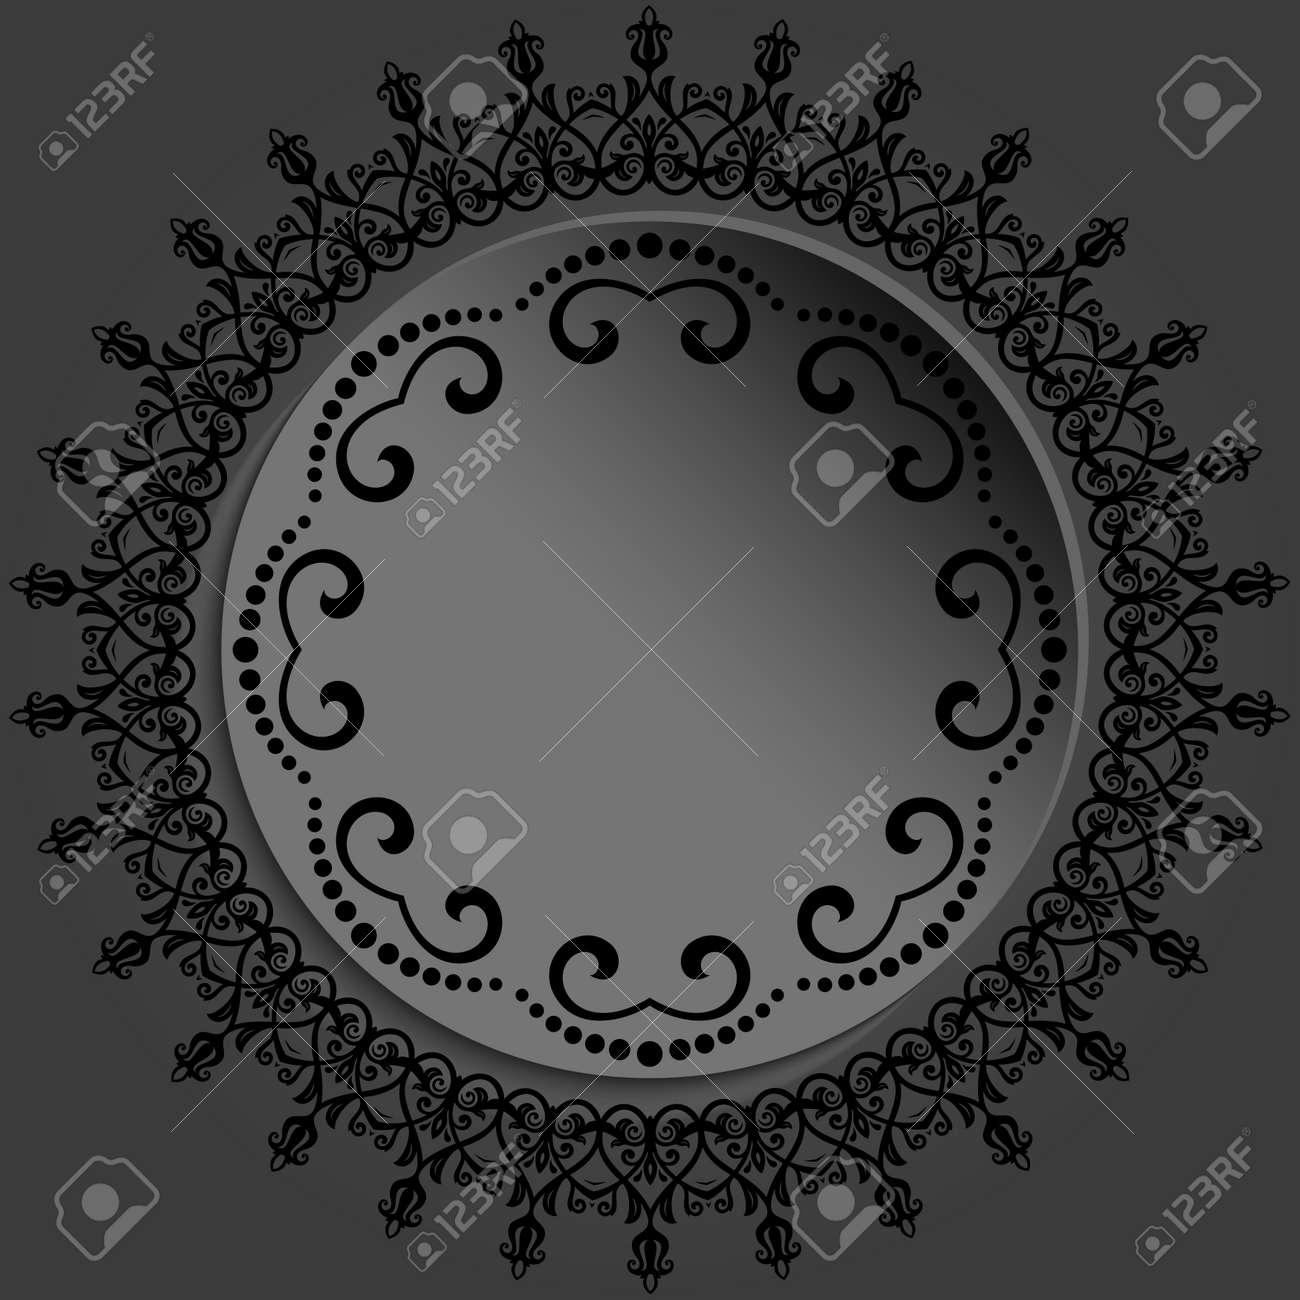 Round frame with floral elements and arabesques. Dark round pattern with arabesques. Fine greeting card - 167155947